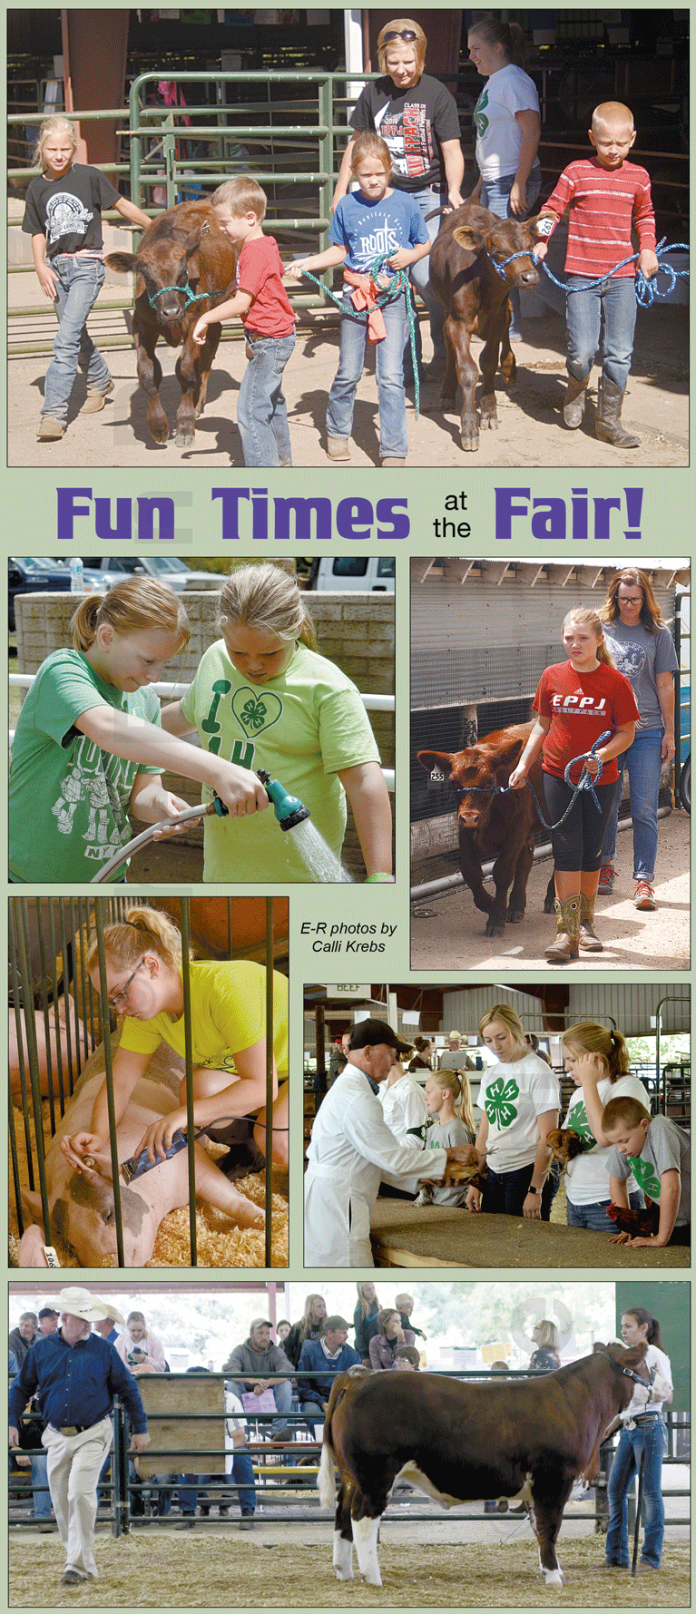 Elgin Nebraska residents prepared to show at the Antelope County Fair.